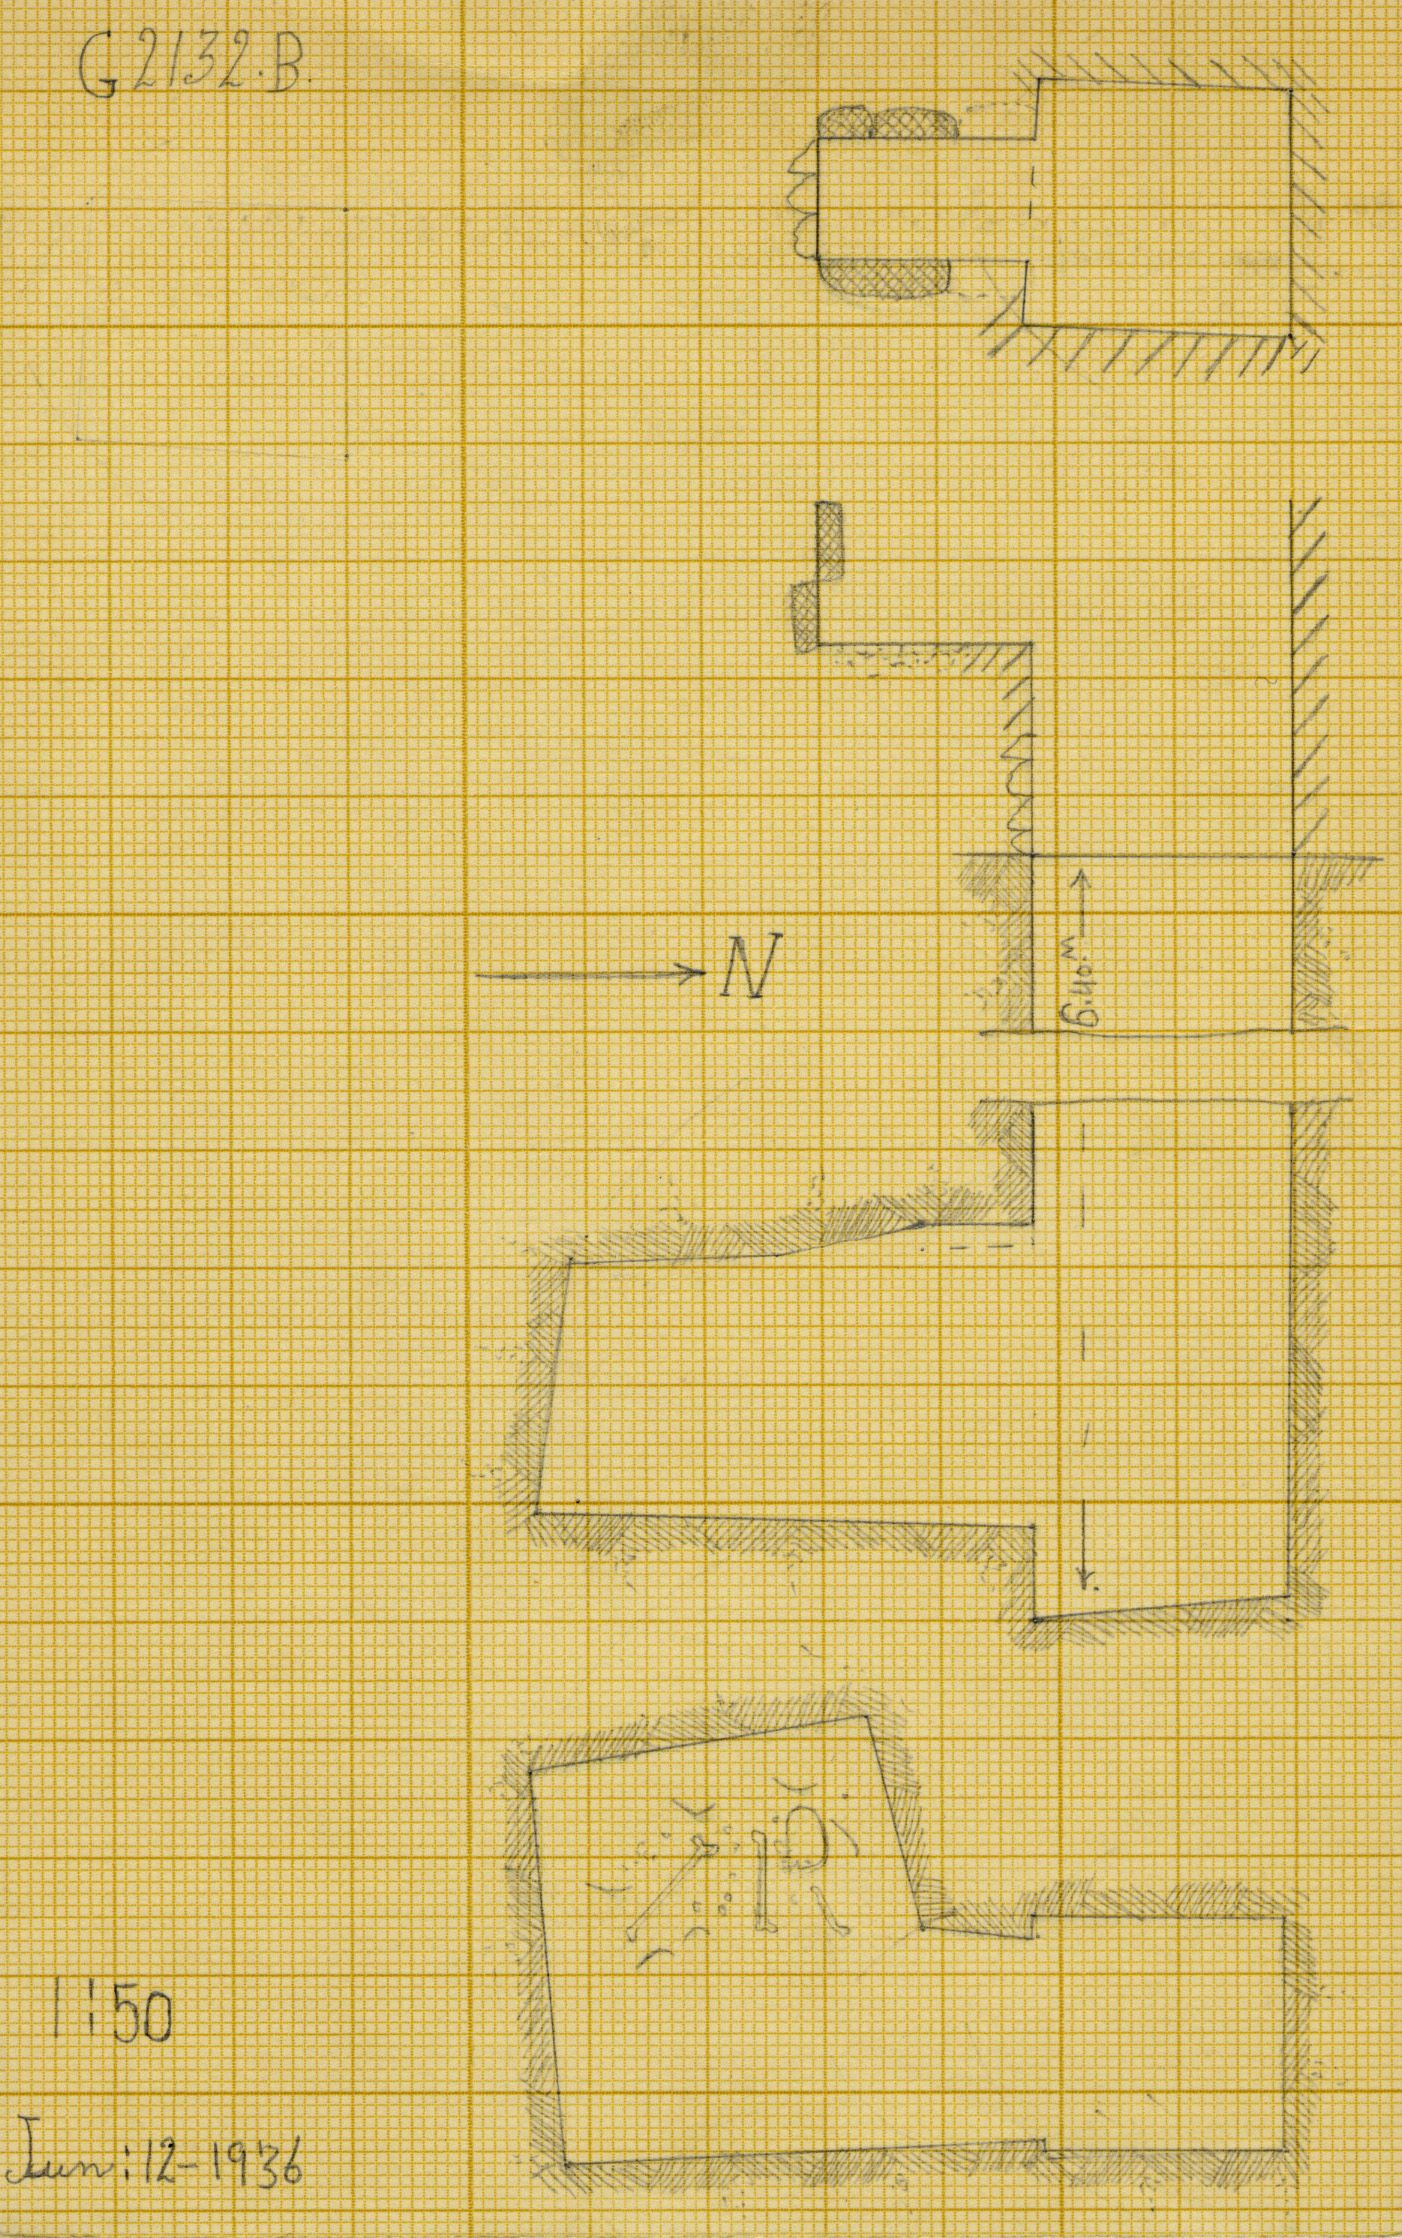 Maps and plans: G 2132, Shaft B